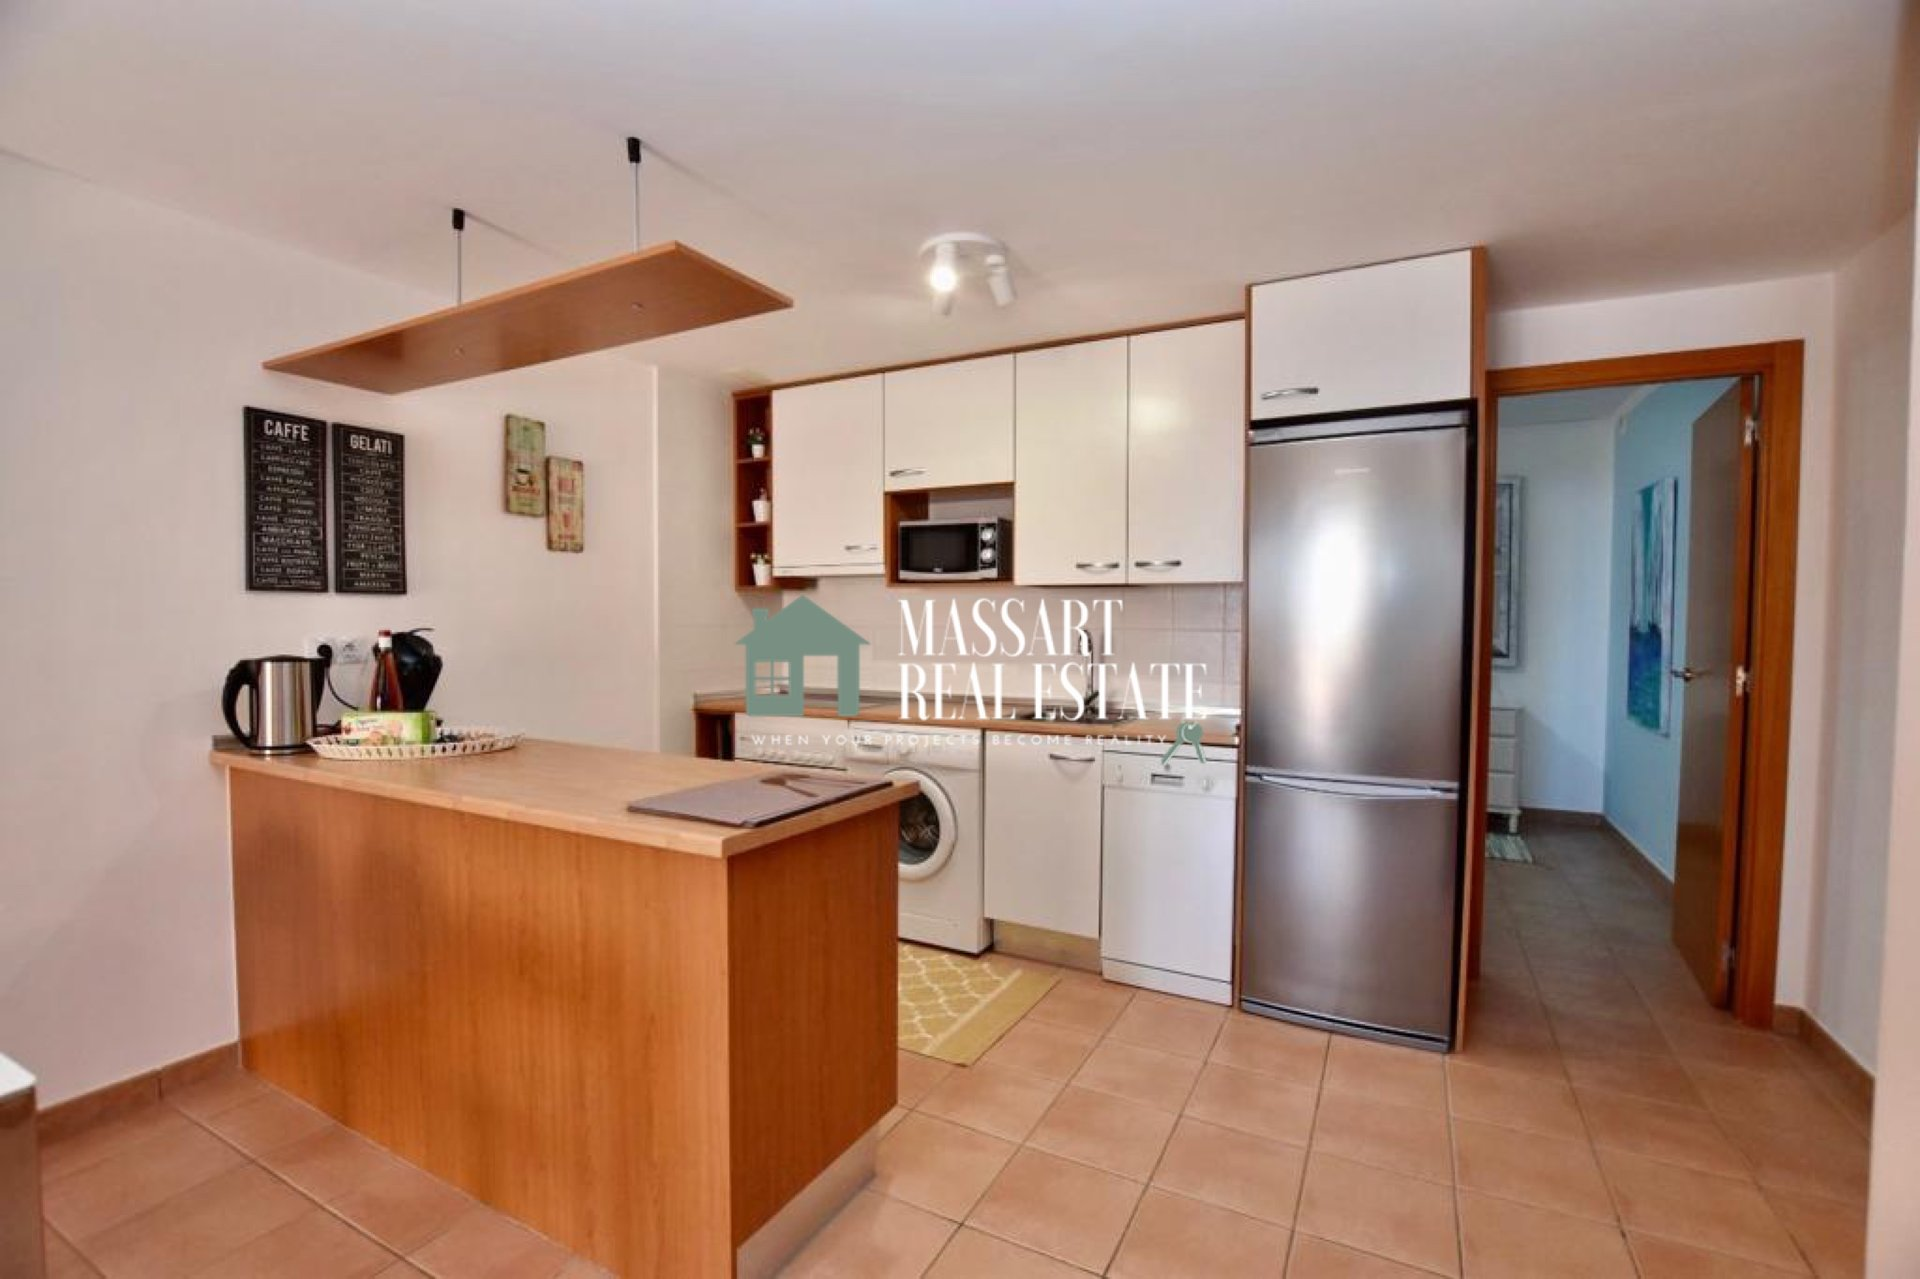 GREAT PRICE LOWER !!! BEFORE € 207,000 - NOW € 185,000 TAKE ADVANTAGE OF THIS ONLY OPPORTUNITY